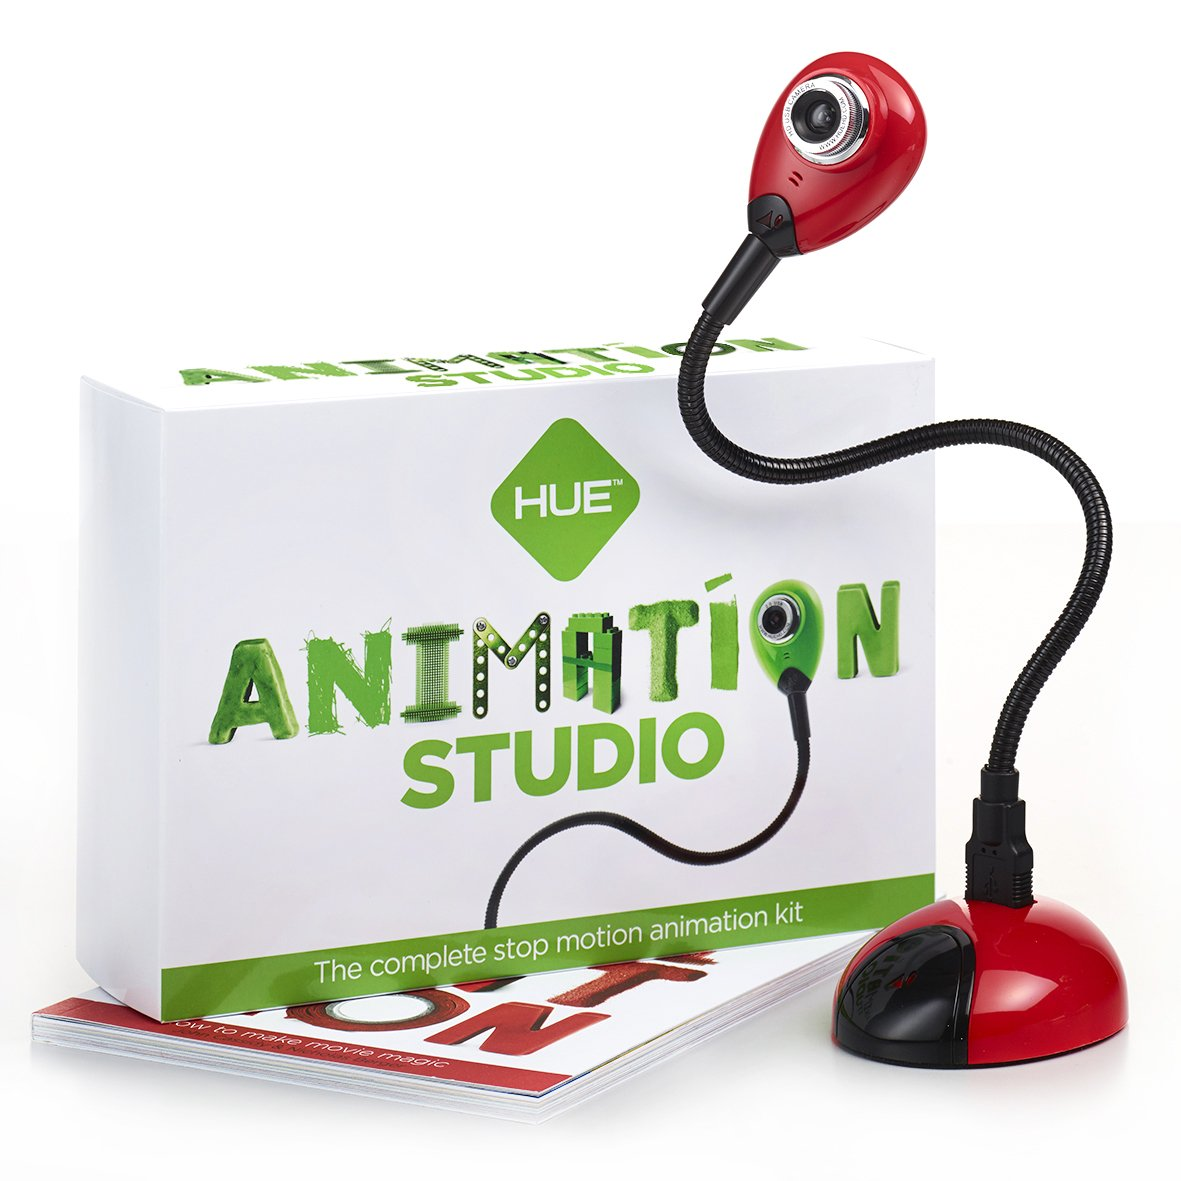 HUE Animation Studio (Red) for Windows PCs and Apple Mac OS X: complete stop motion animation kit with camera, software and book by HUE HD